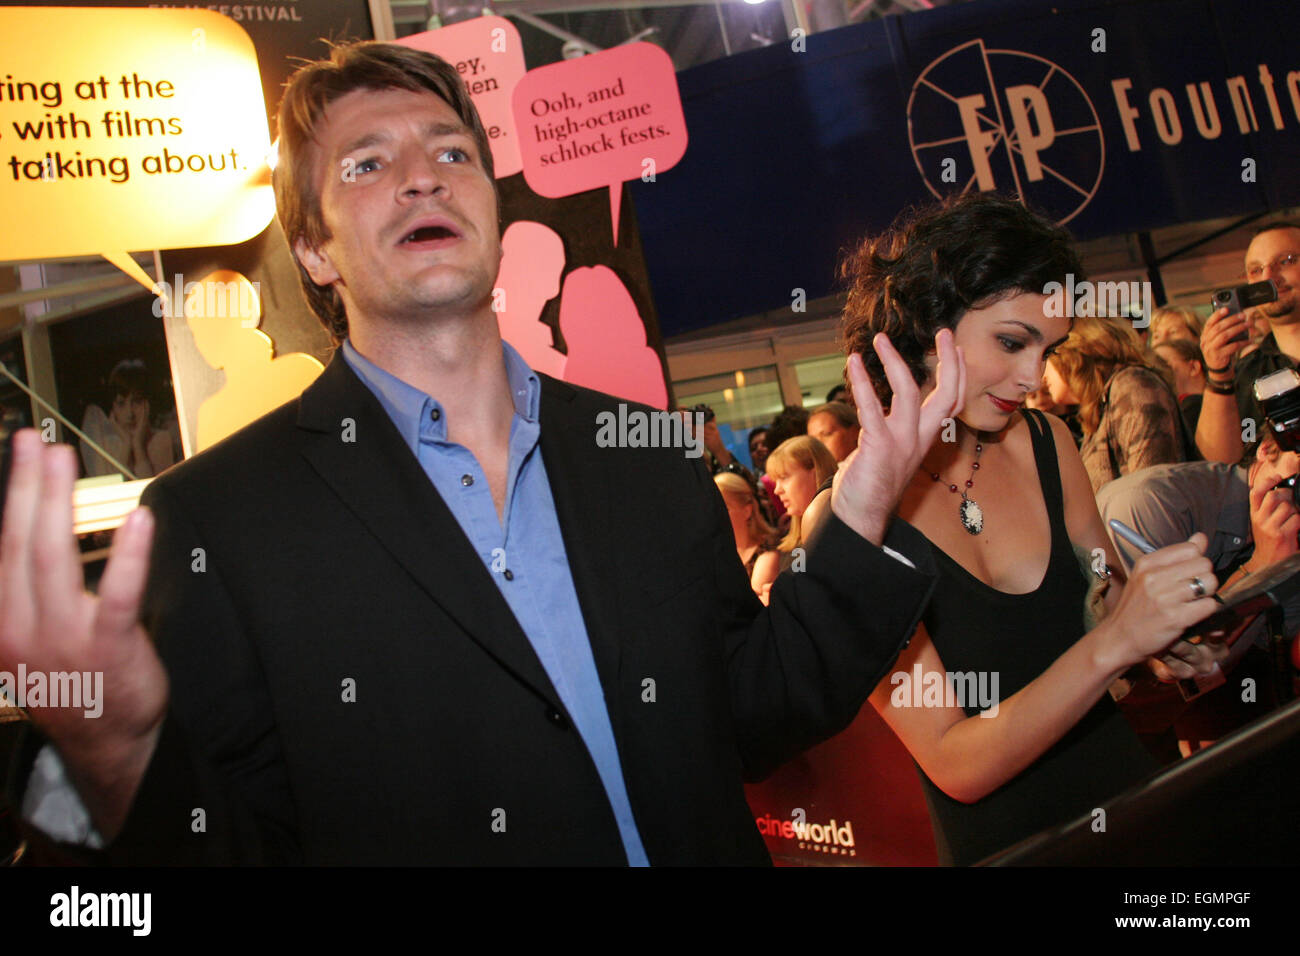 NATHAN FILLION AND MORENA BACCARIN AT WORLD PREMIERE OF 'SERENITY' MOVIE, written and directed by Joss Whedon, - Stock Image